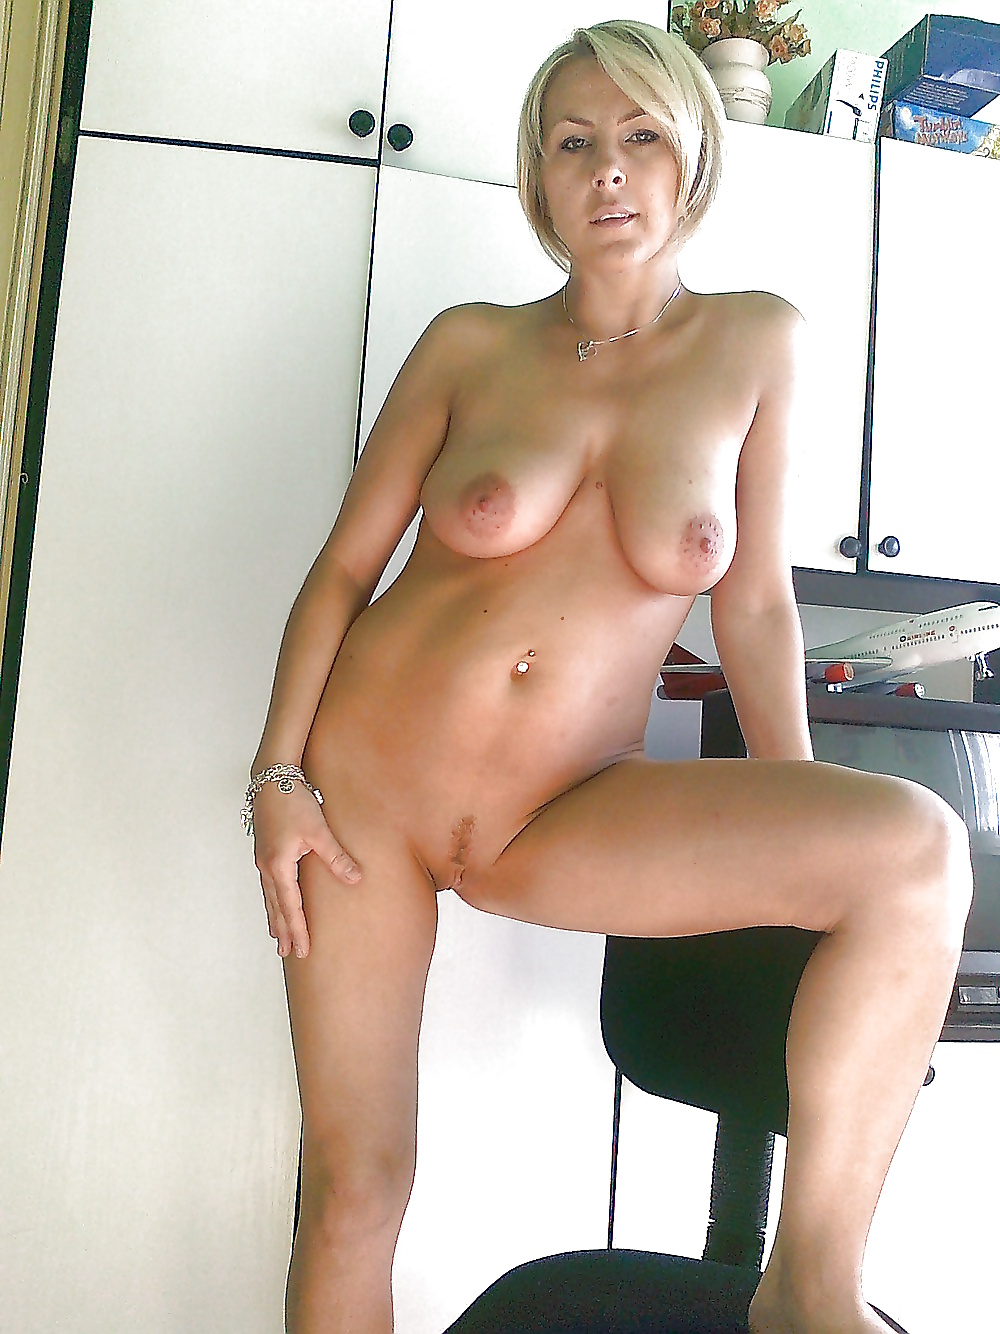 Naked pics of my aunt